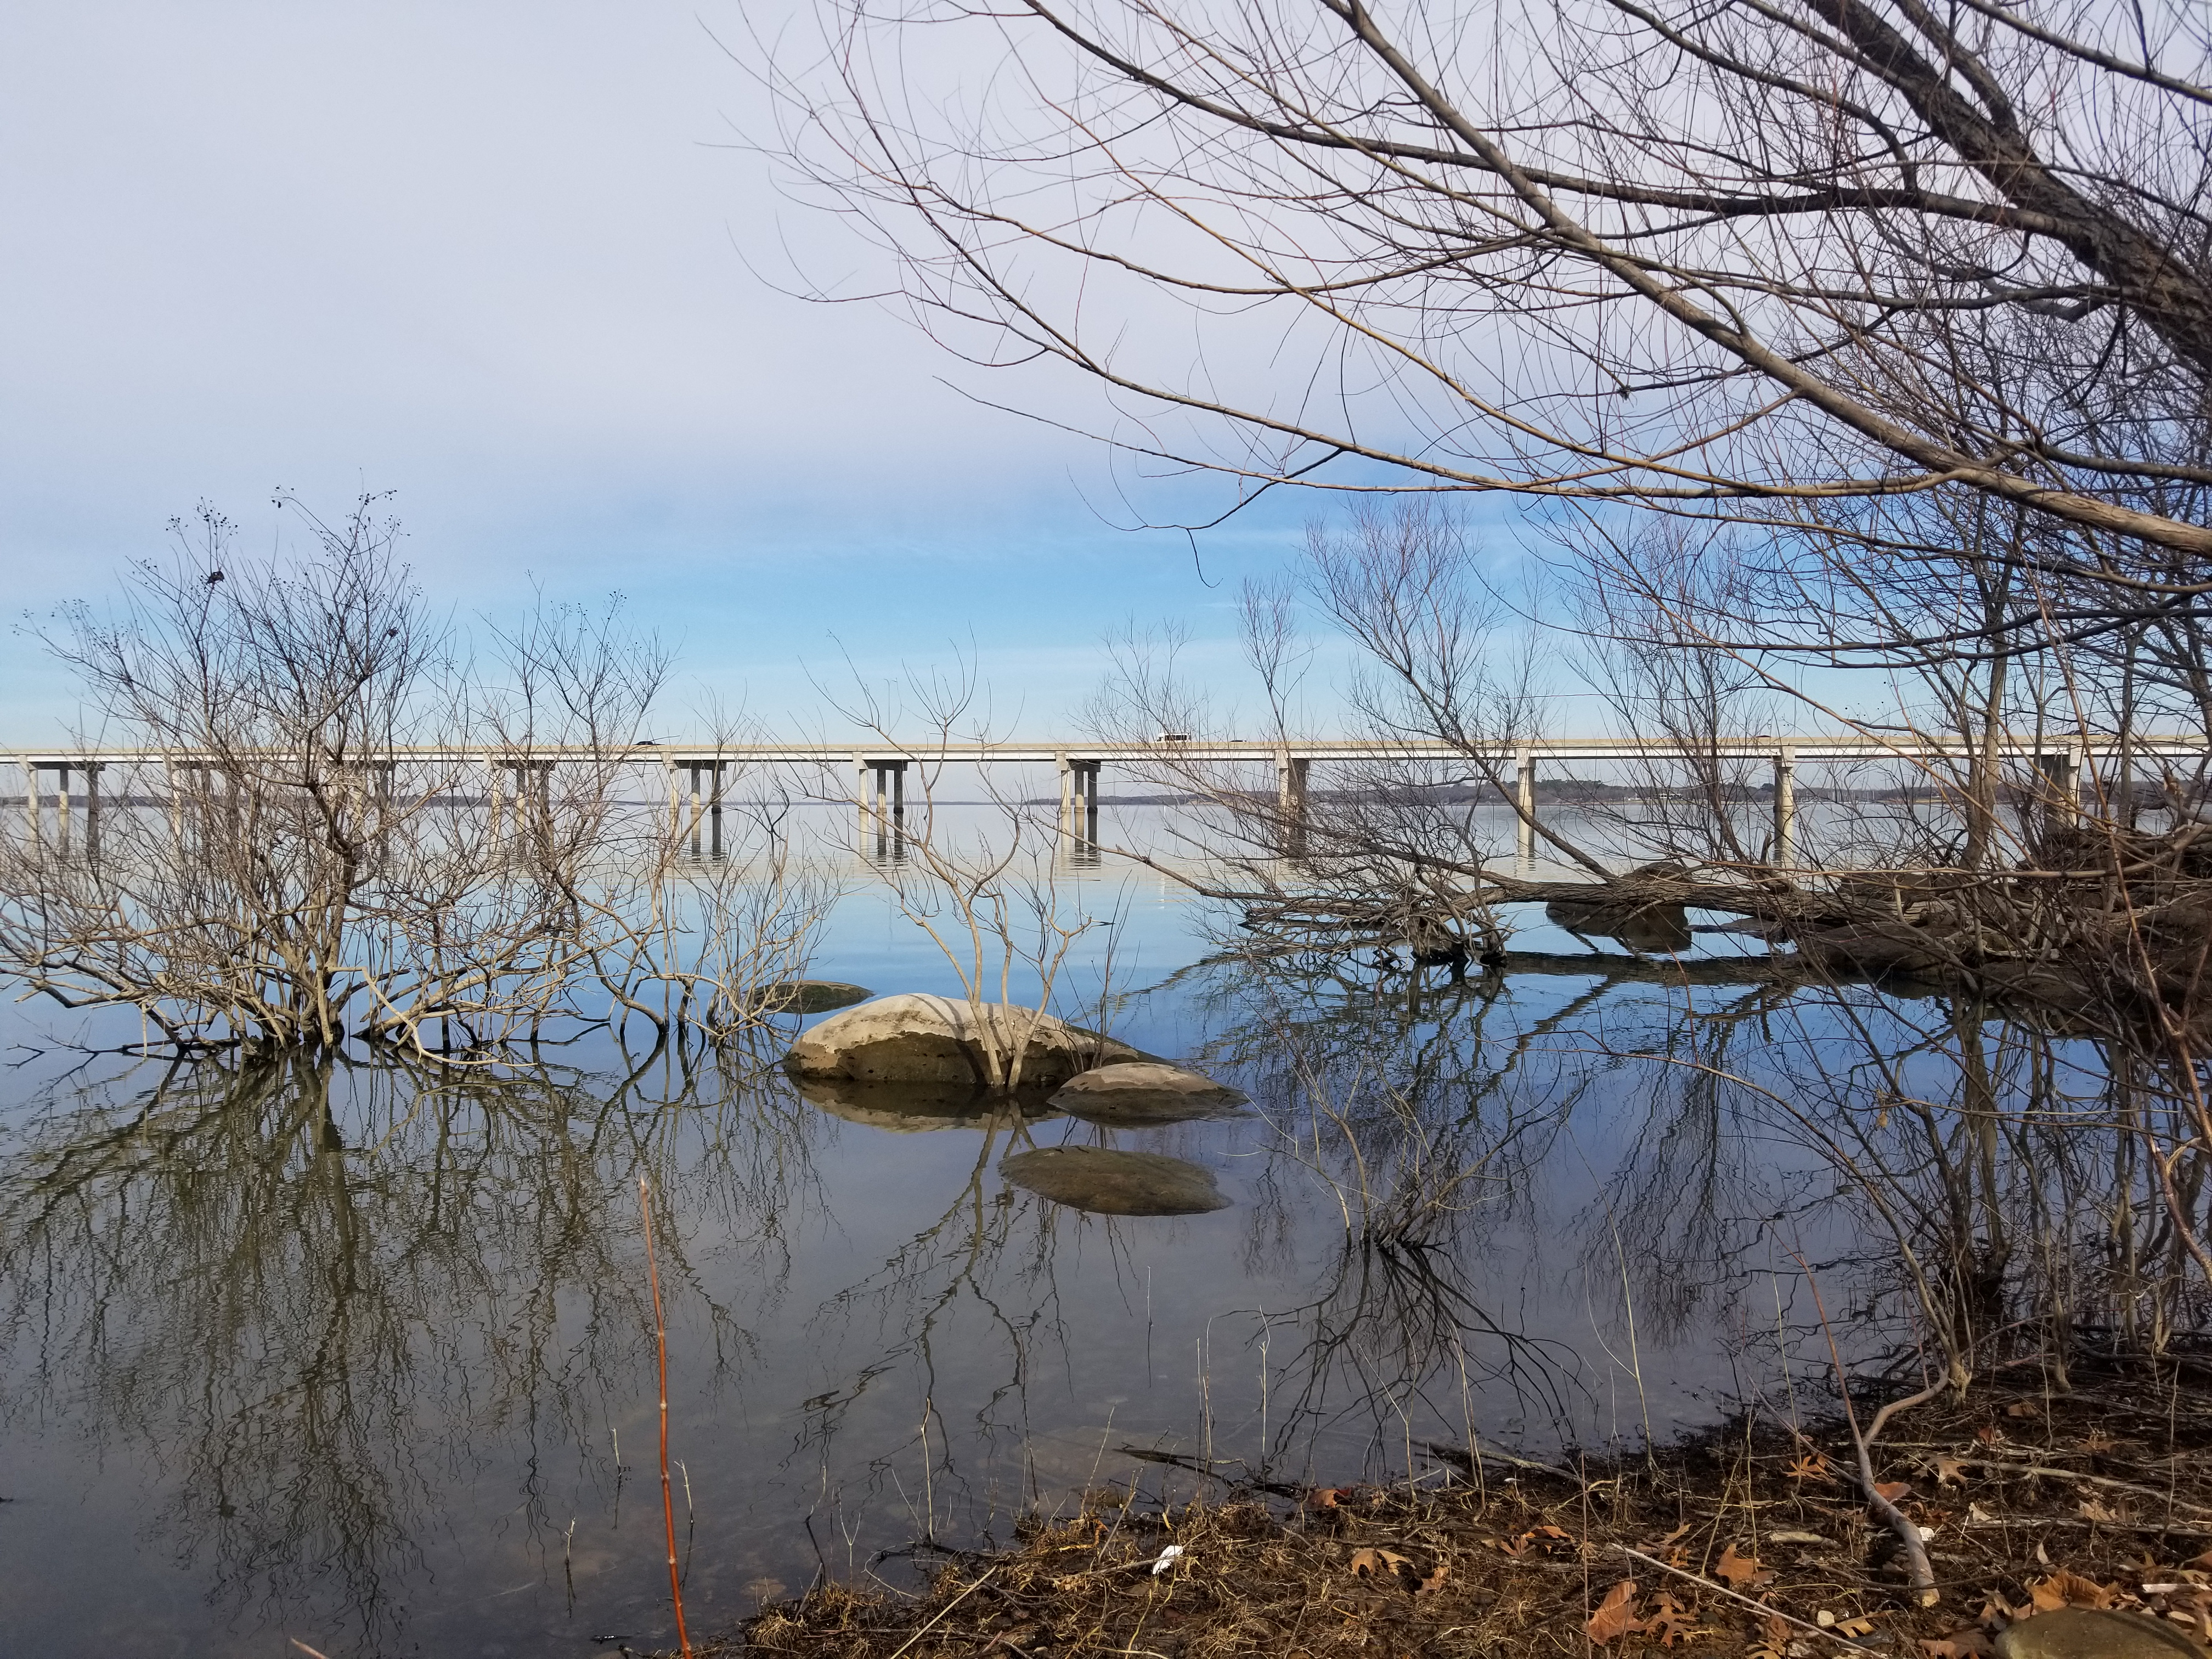 So come check out this lakefront lot. Not only a gorgeous view, but lower taxes to boot. What more could you ask for?